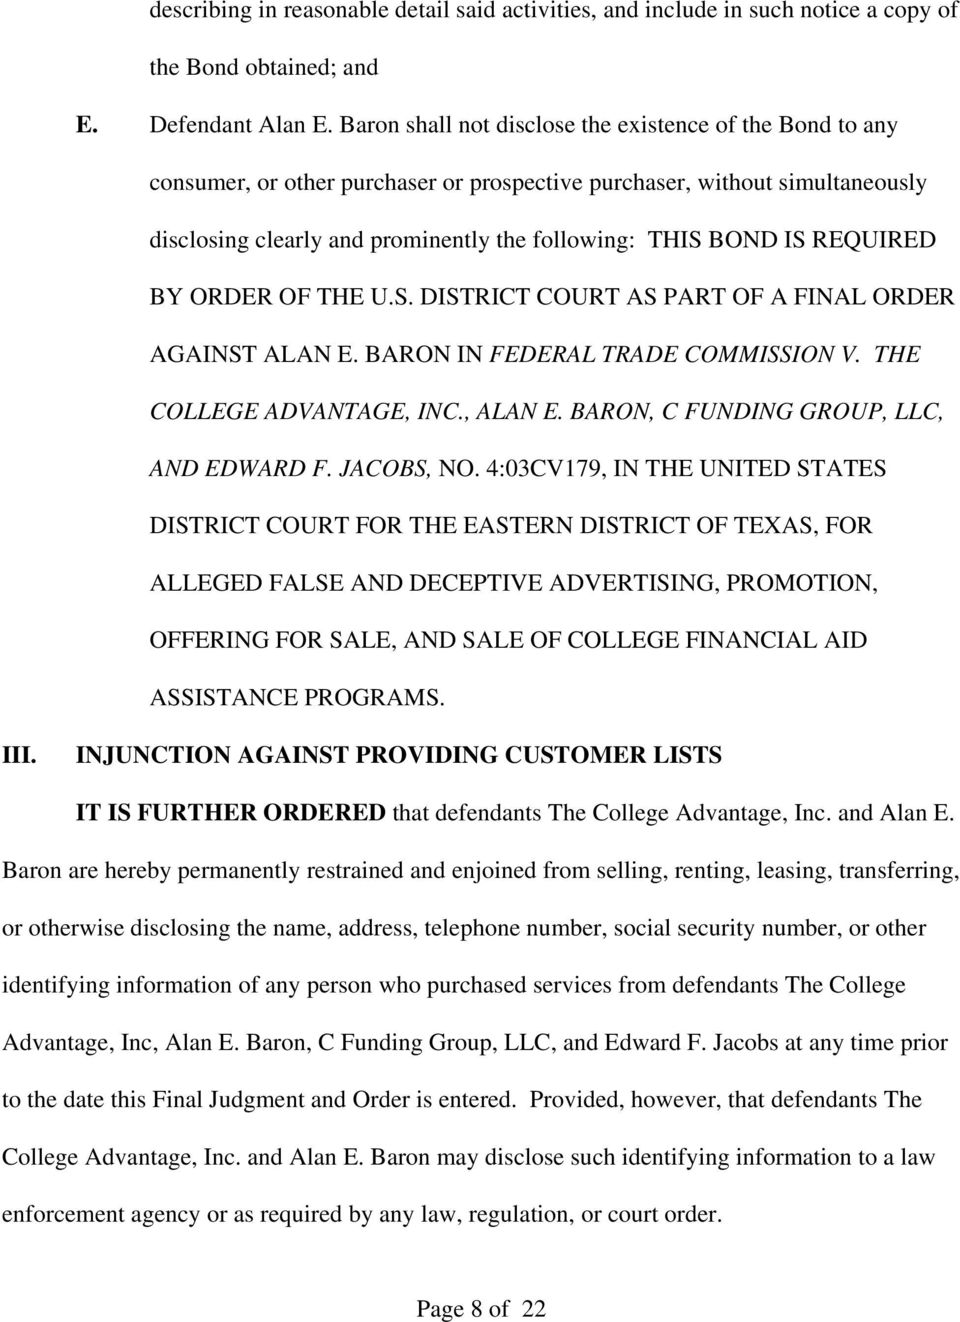 REQUIRED BY ORDER OF THE U.S. DISTRICT COURT AS PART OF A FINAL ORDER AGAINST ALAN E. BARON IN FEDERAL TRADE COMMISSION V. THE COLLEGE ADVANTAGE, INC., ALAN E.